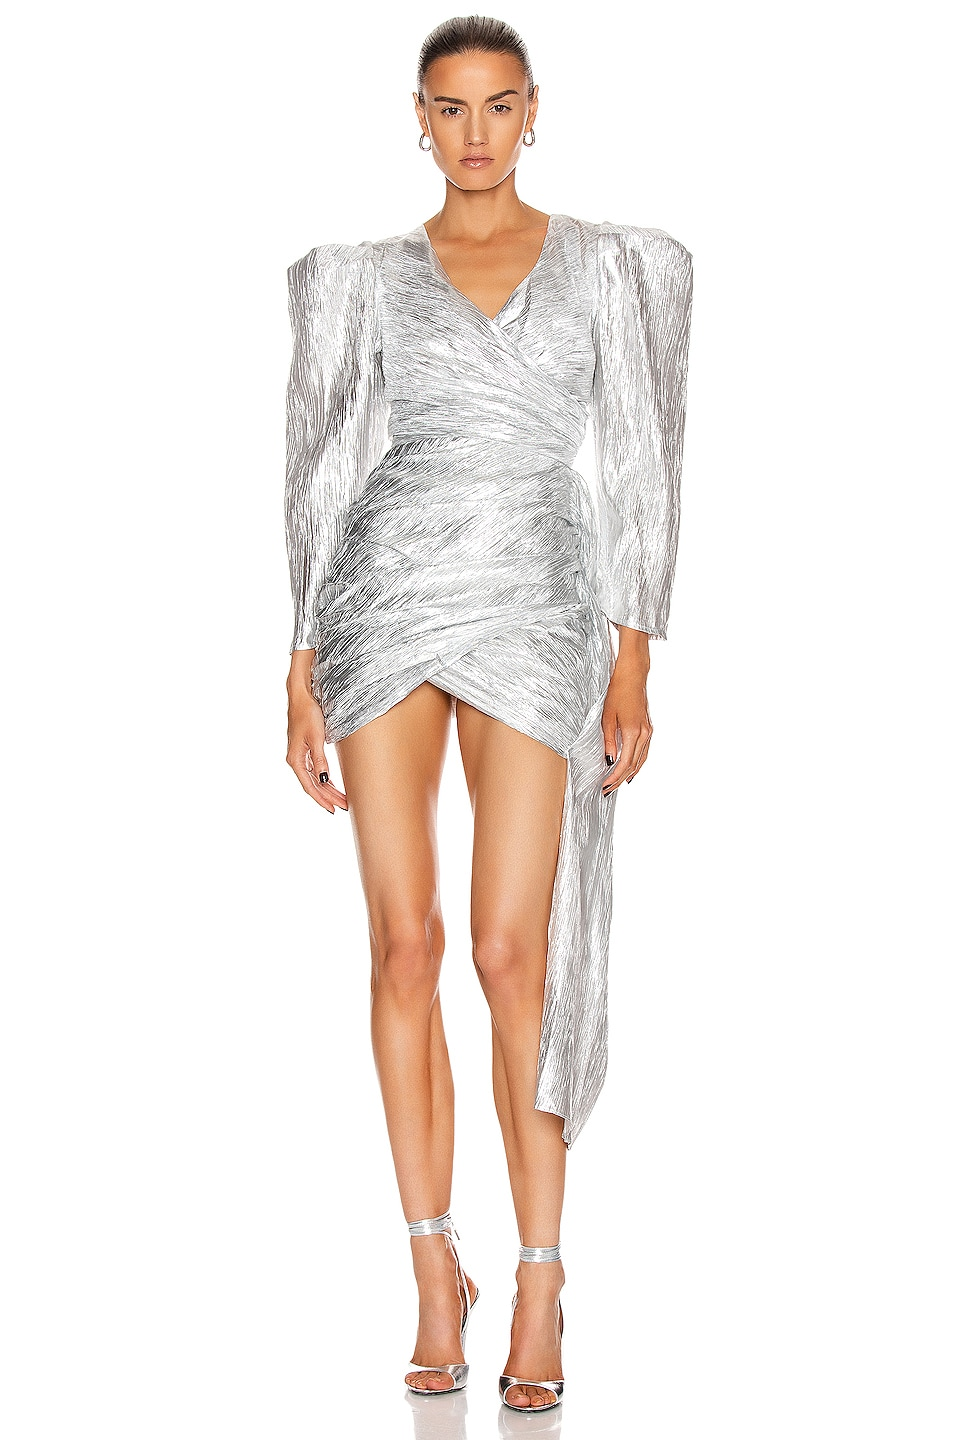 Image 1 of Atoir The Luna Dress in Silver Lining